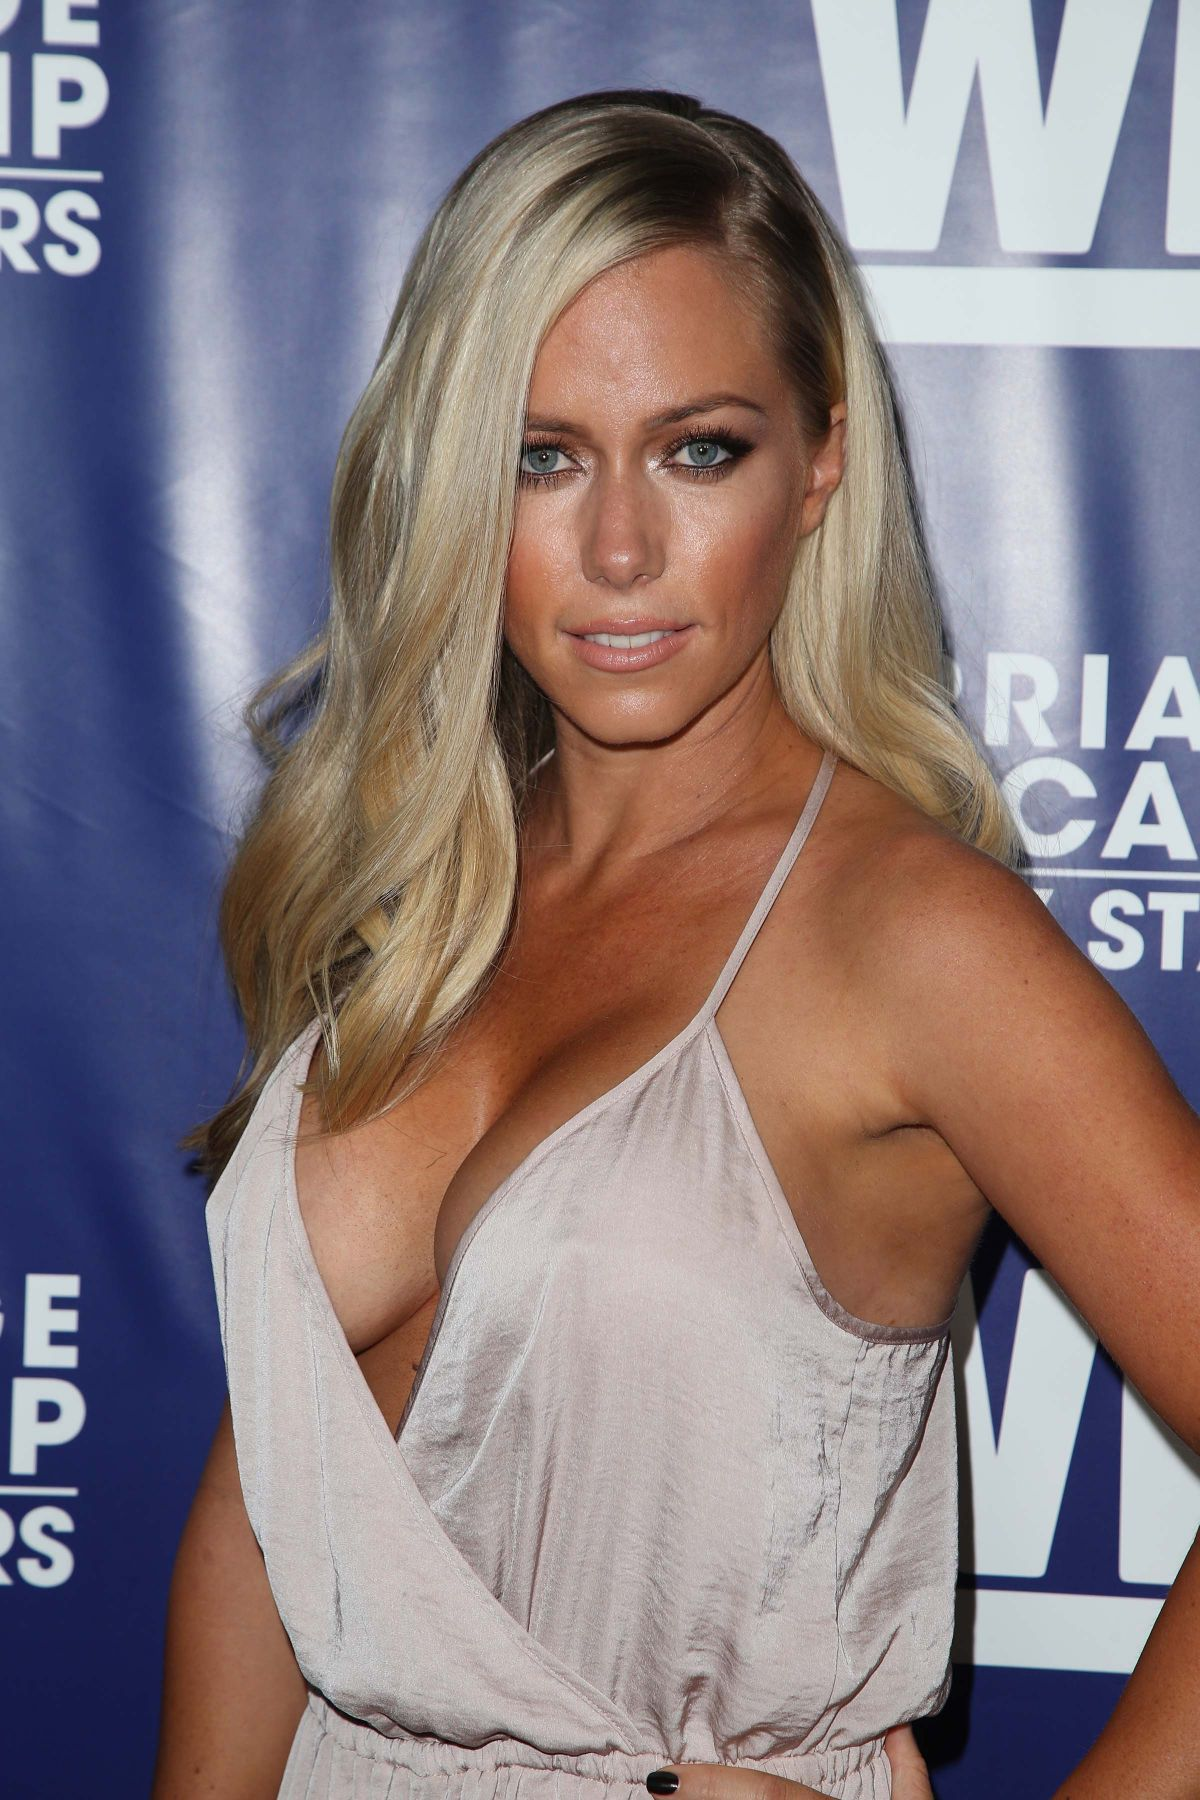 gallery Kendra wilkinson photo